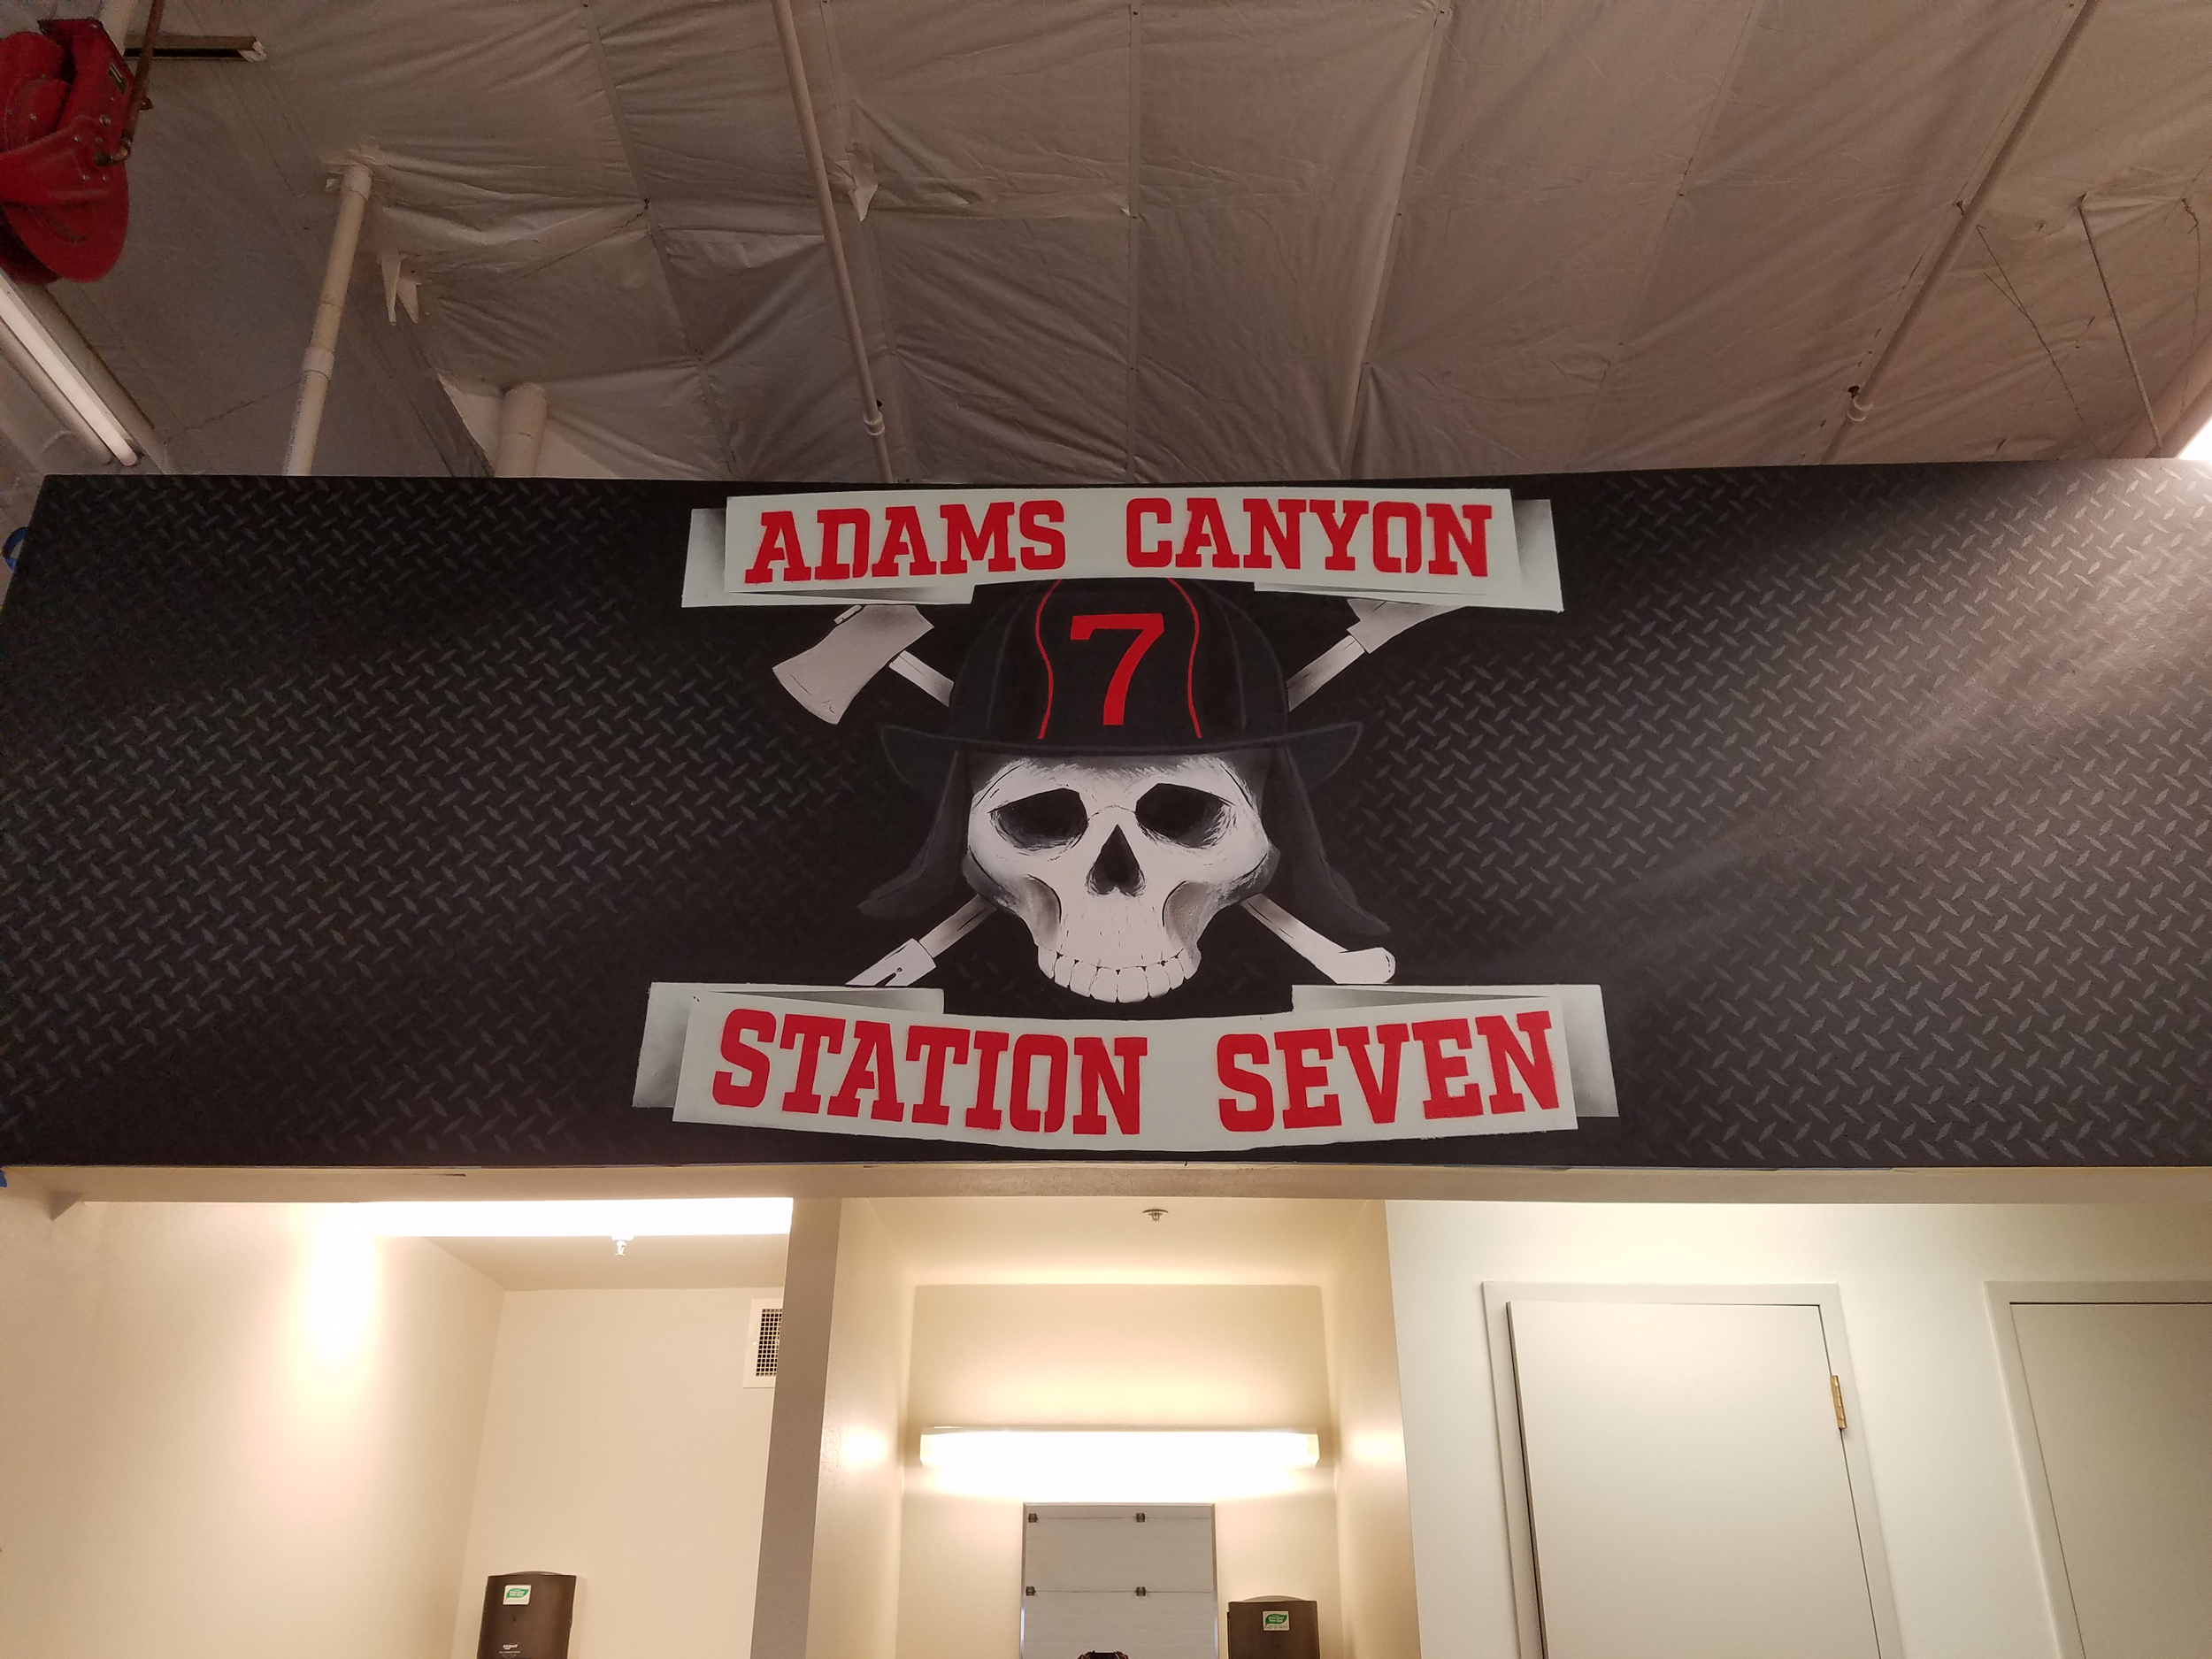 Station 7 mural - More info coming soon...